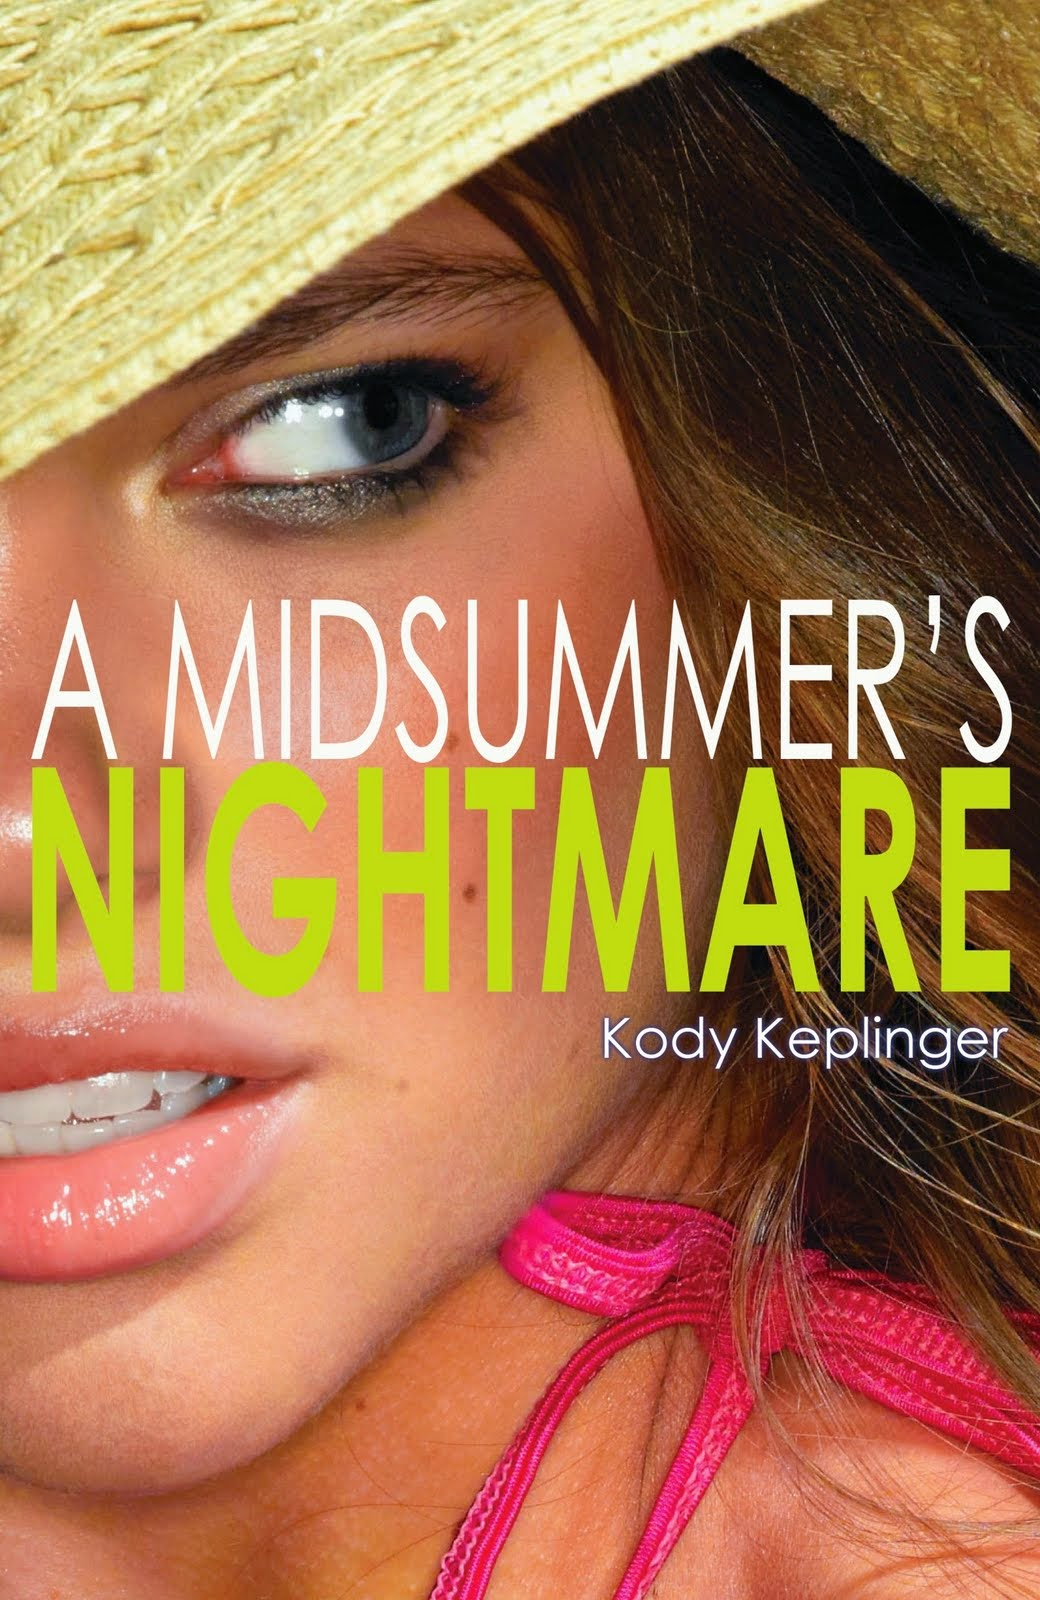 A Midsummer's Nightmare  by Kody Keplinger [Book Cover]